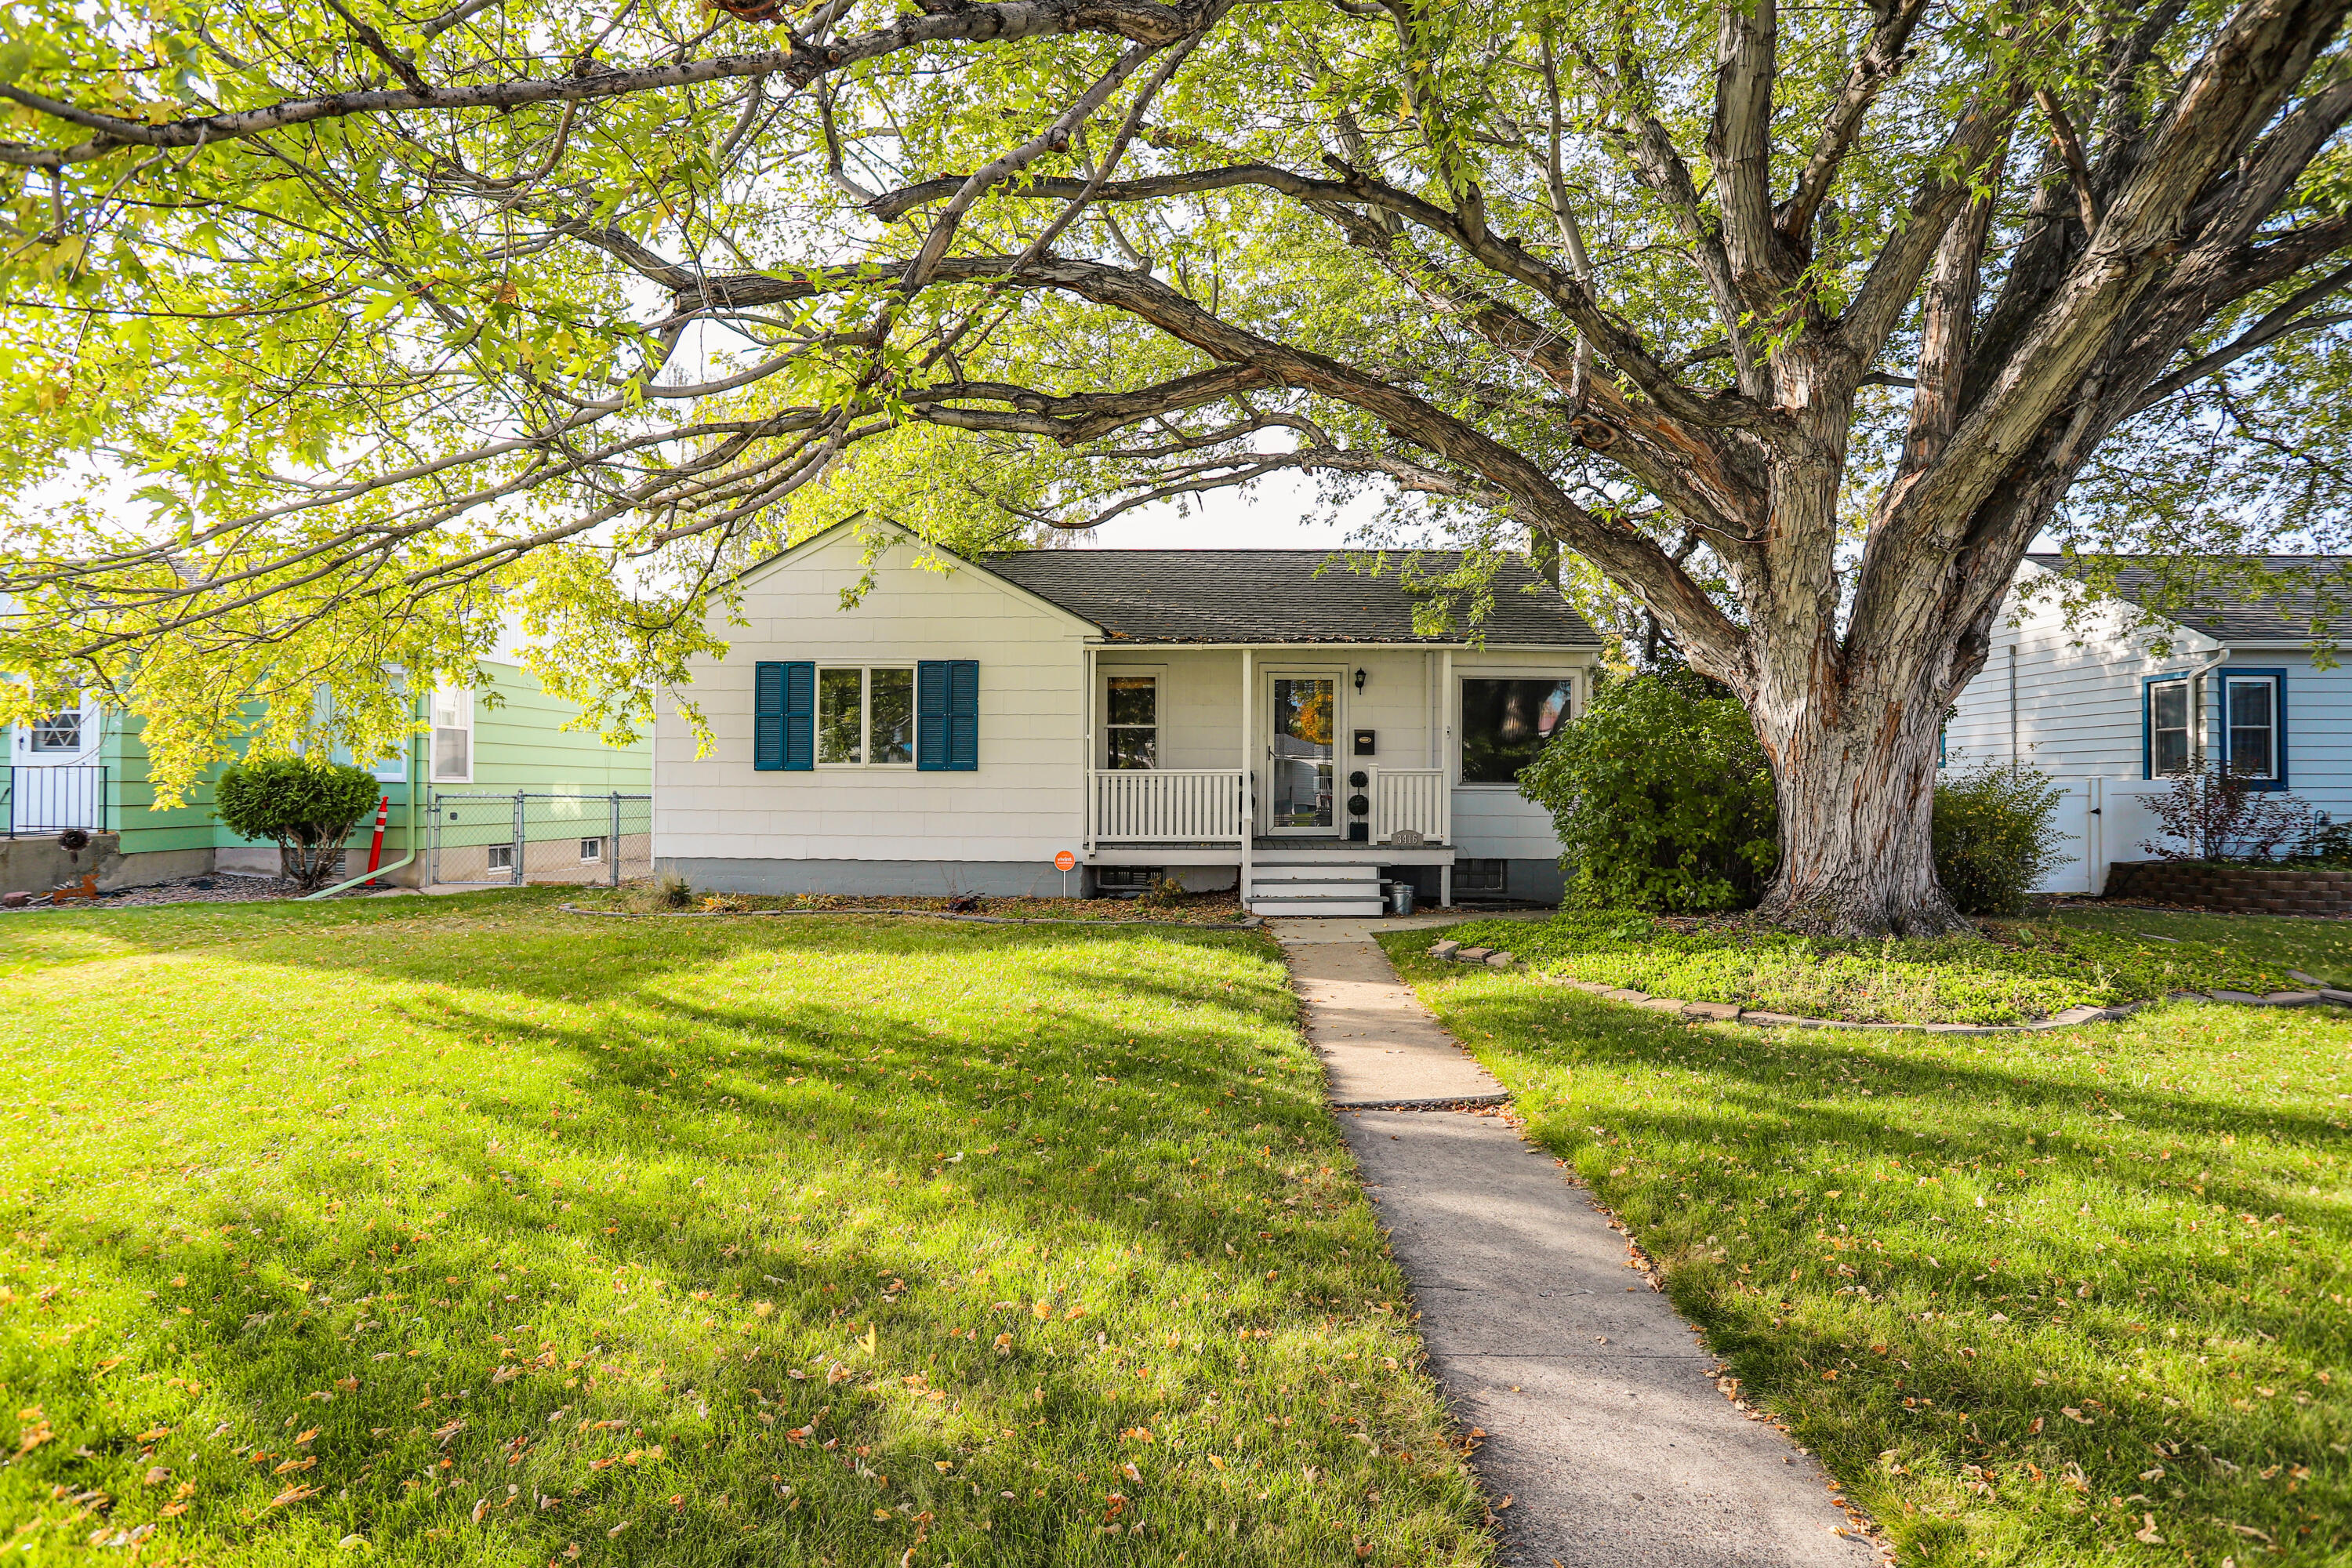 CHARM ABOUNDS in this 4 bedroom 1 bath home featuring large main bedroom, 3 bedrooms on the main level, hardwood floors on part of the main, and a bright fresh kitchen! You don't want to miss this one! Listed by Melissa Dascoulias